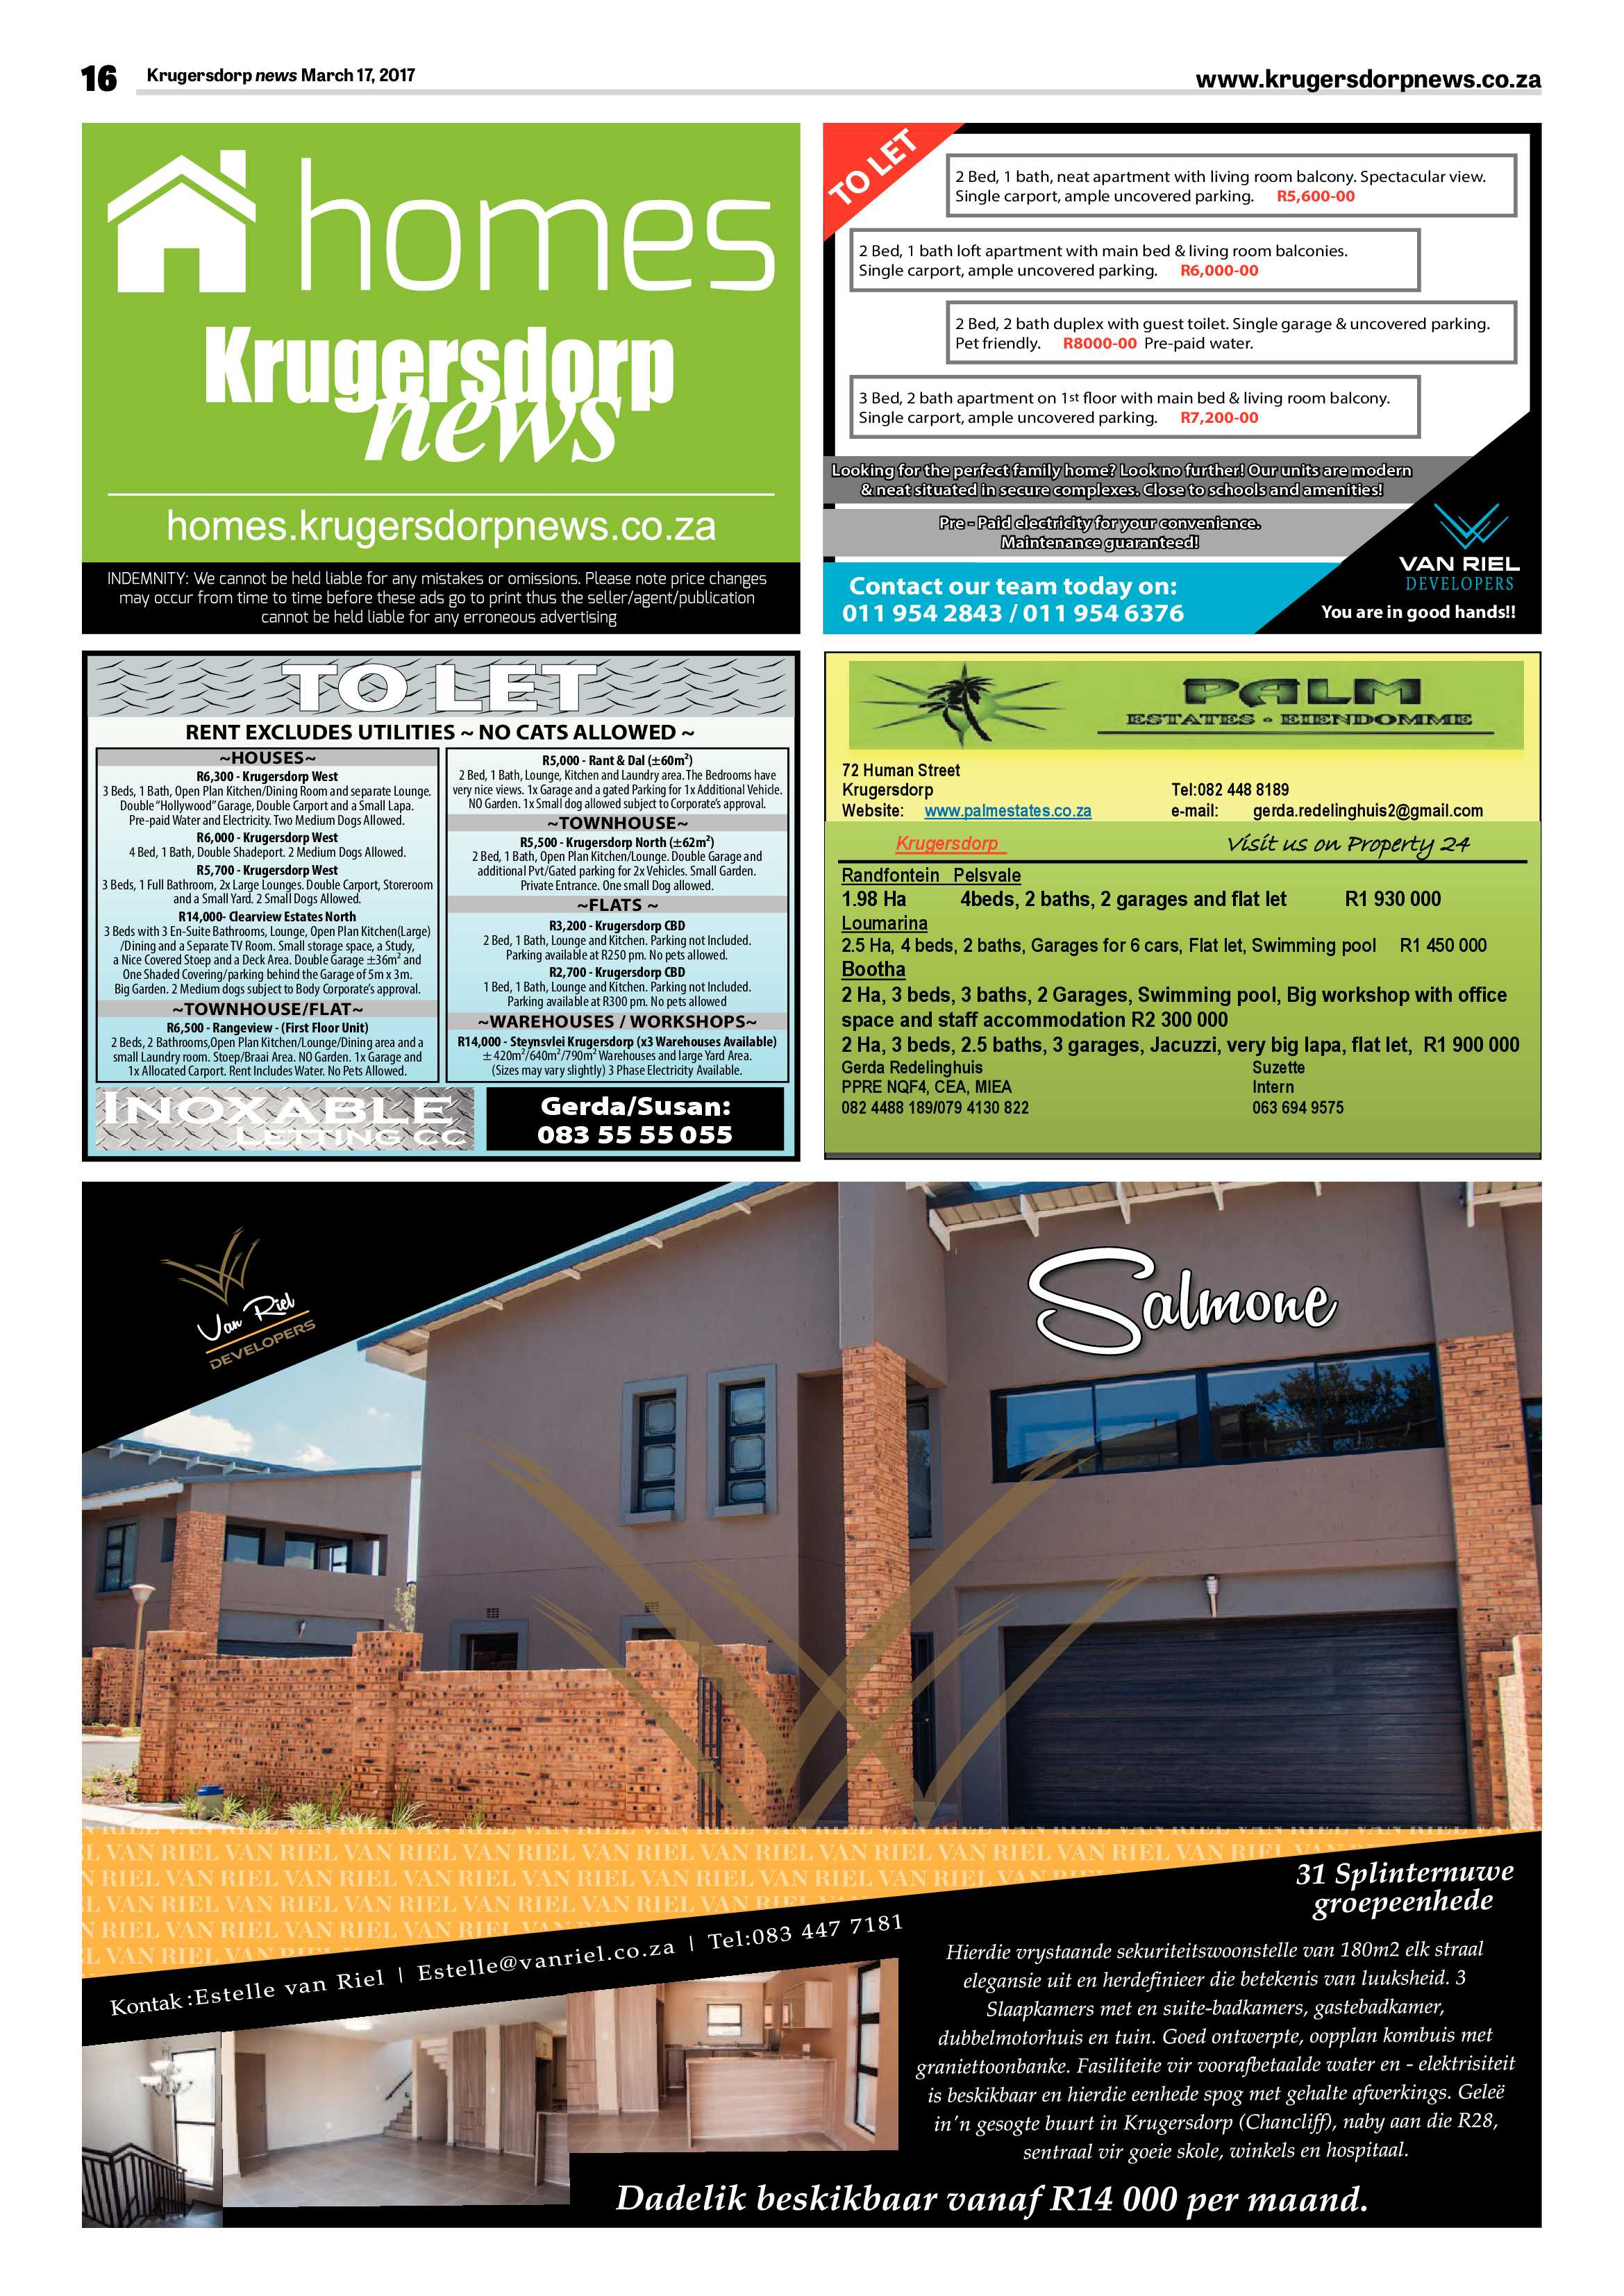 krugersdorp-news-17-march-2017-epapers-page-16